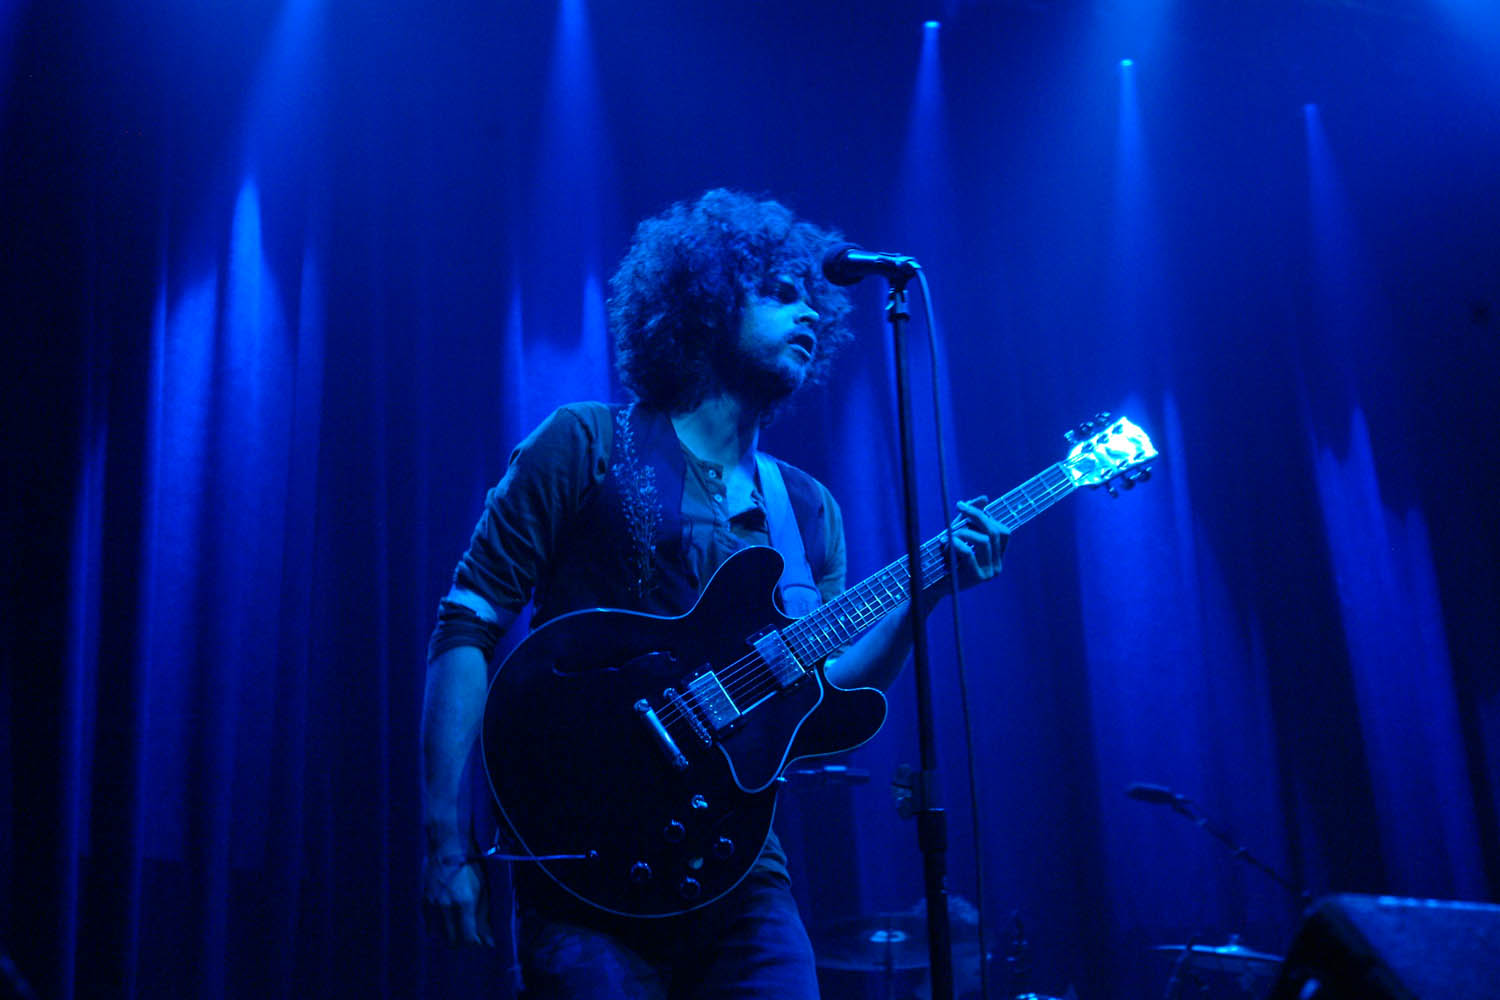 Andrew Stockdale of Wolfmother. A single colored light can affect your image and draw in the viewer. Photo by Leon Armour Jr./Visual Stimuli Studios